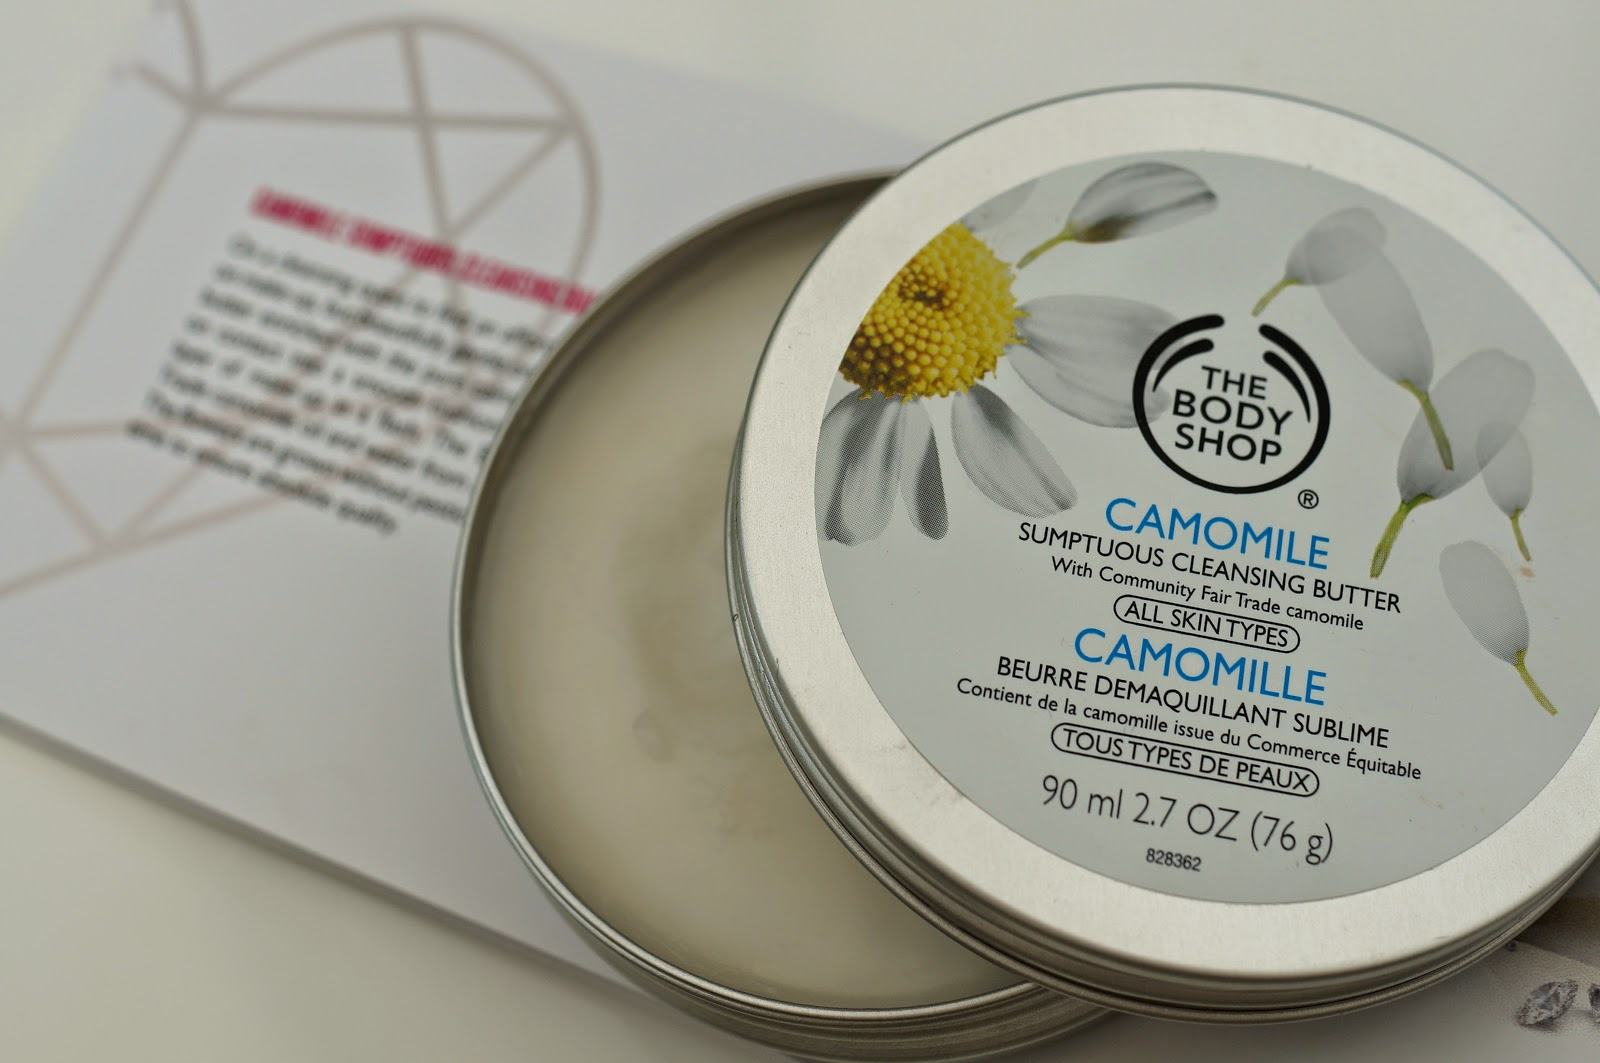 The Body Shop camomile cleansing butter